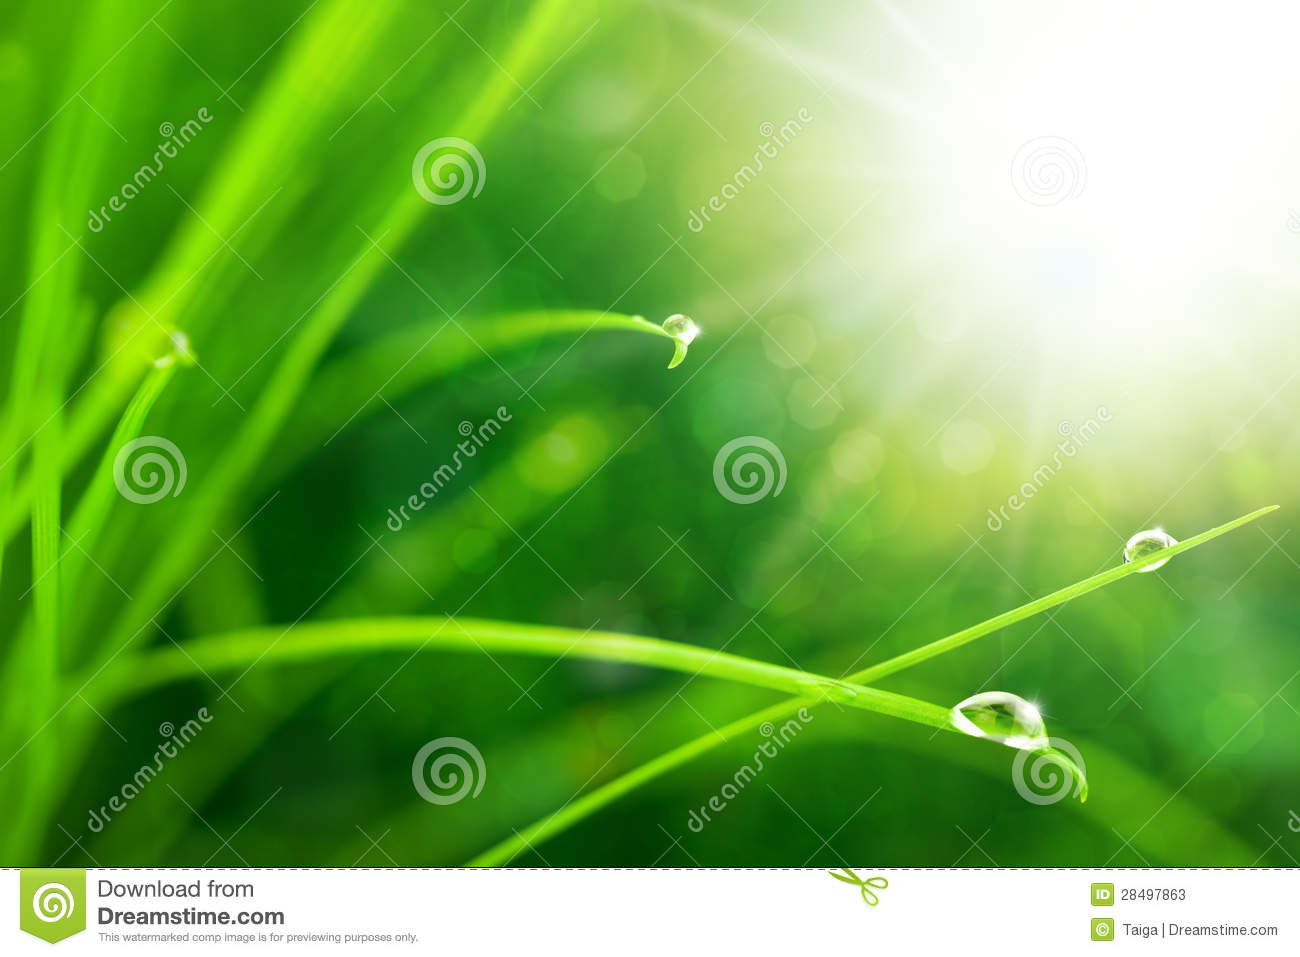 Eco Nature Background with Grass, Sun and Waterdrops